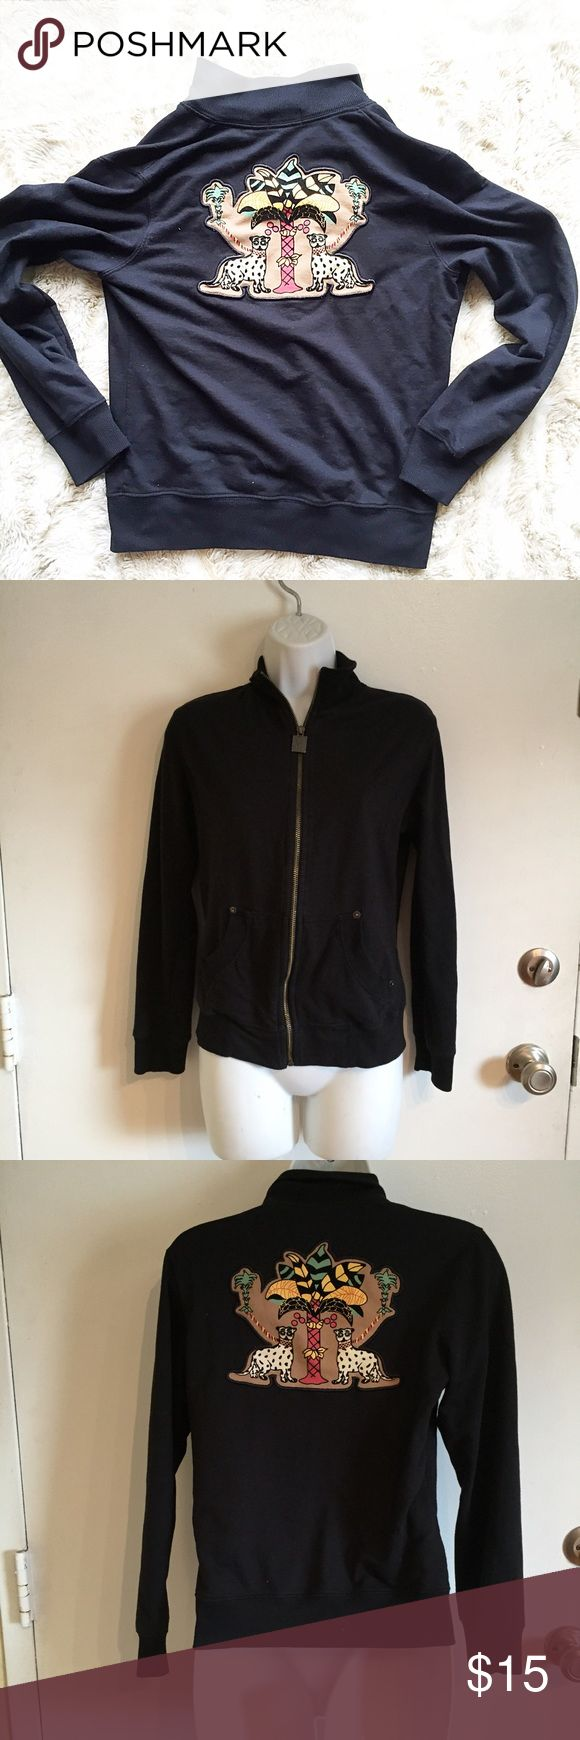 Nilla Shields Unique Zip Up Jacket Unique Nilla Shields zip up jacket with ethnic patch on the back. Size small. #unique #nillashields #zipup #jacket #small #ethnic #traveler #punkydoodle  No modeling Smoke and pet free home I do discount bundles Nilla Shields Jackets & Coats